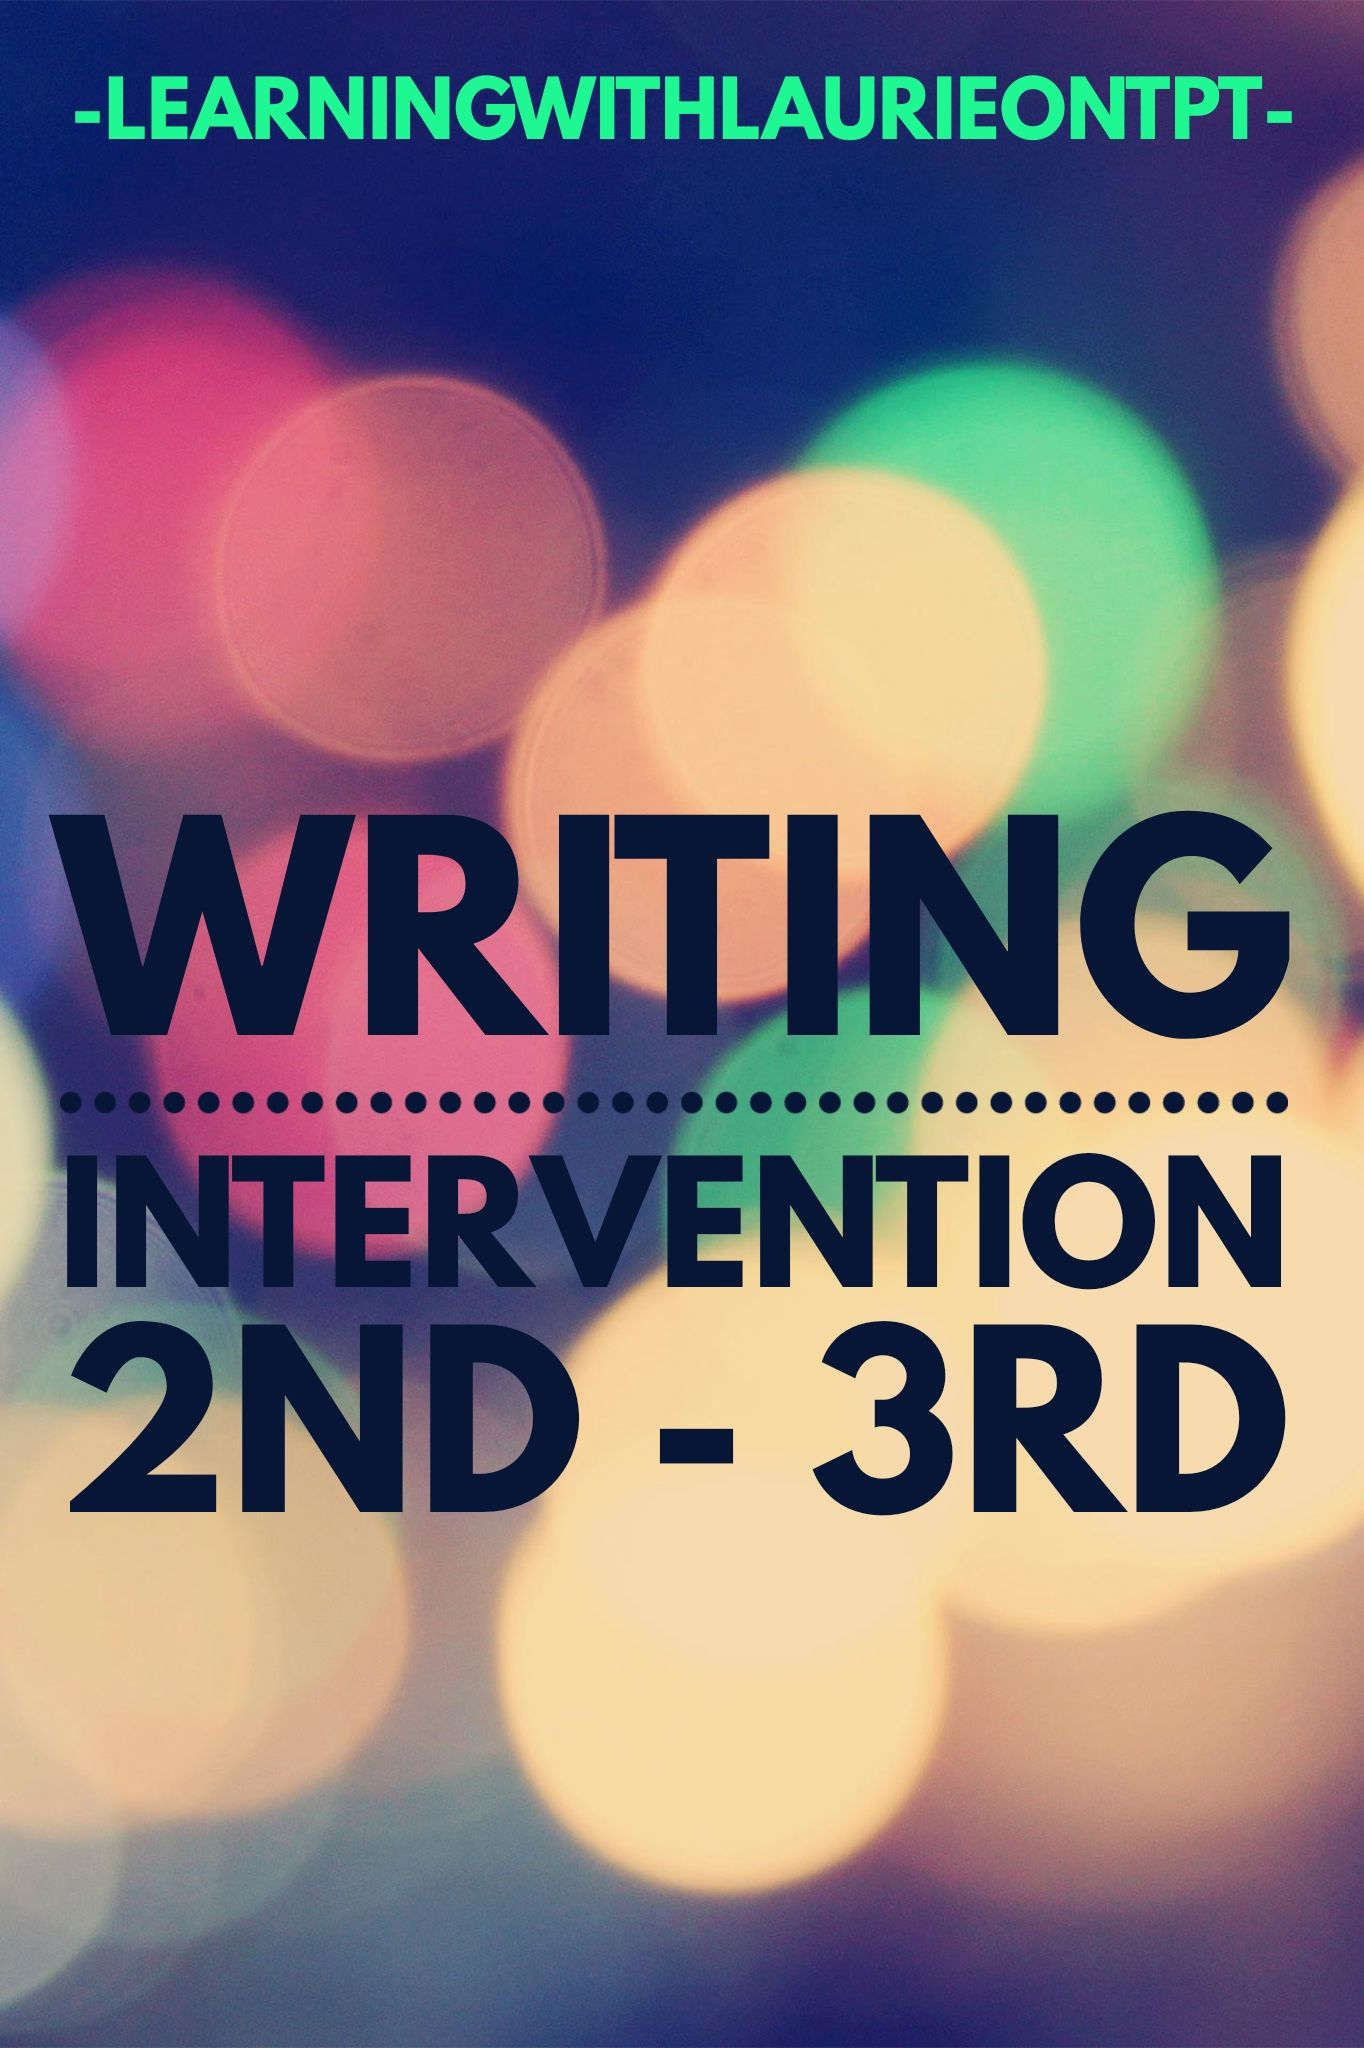 Writing Intervention 2nd 3rd In